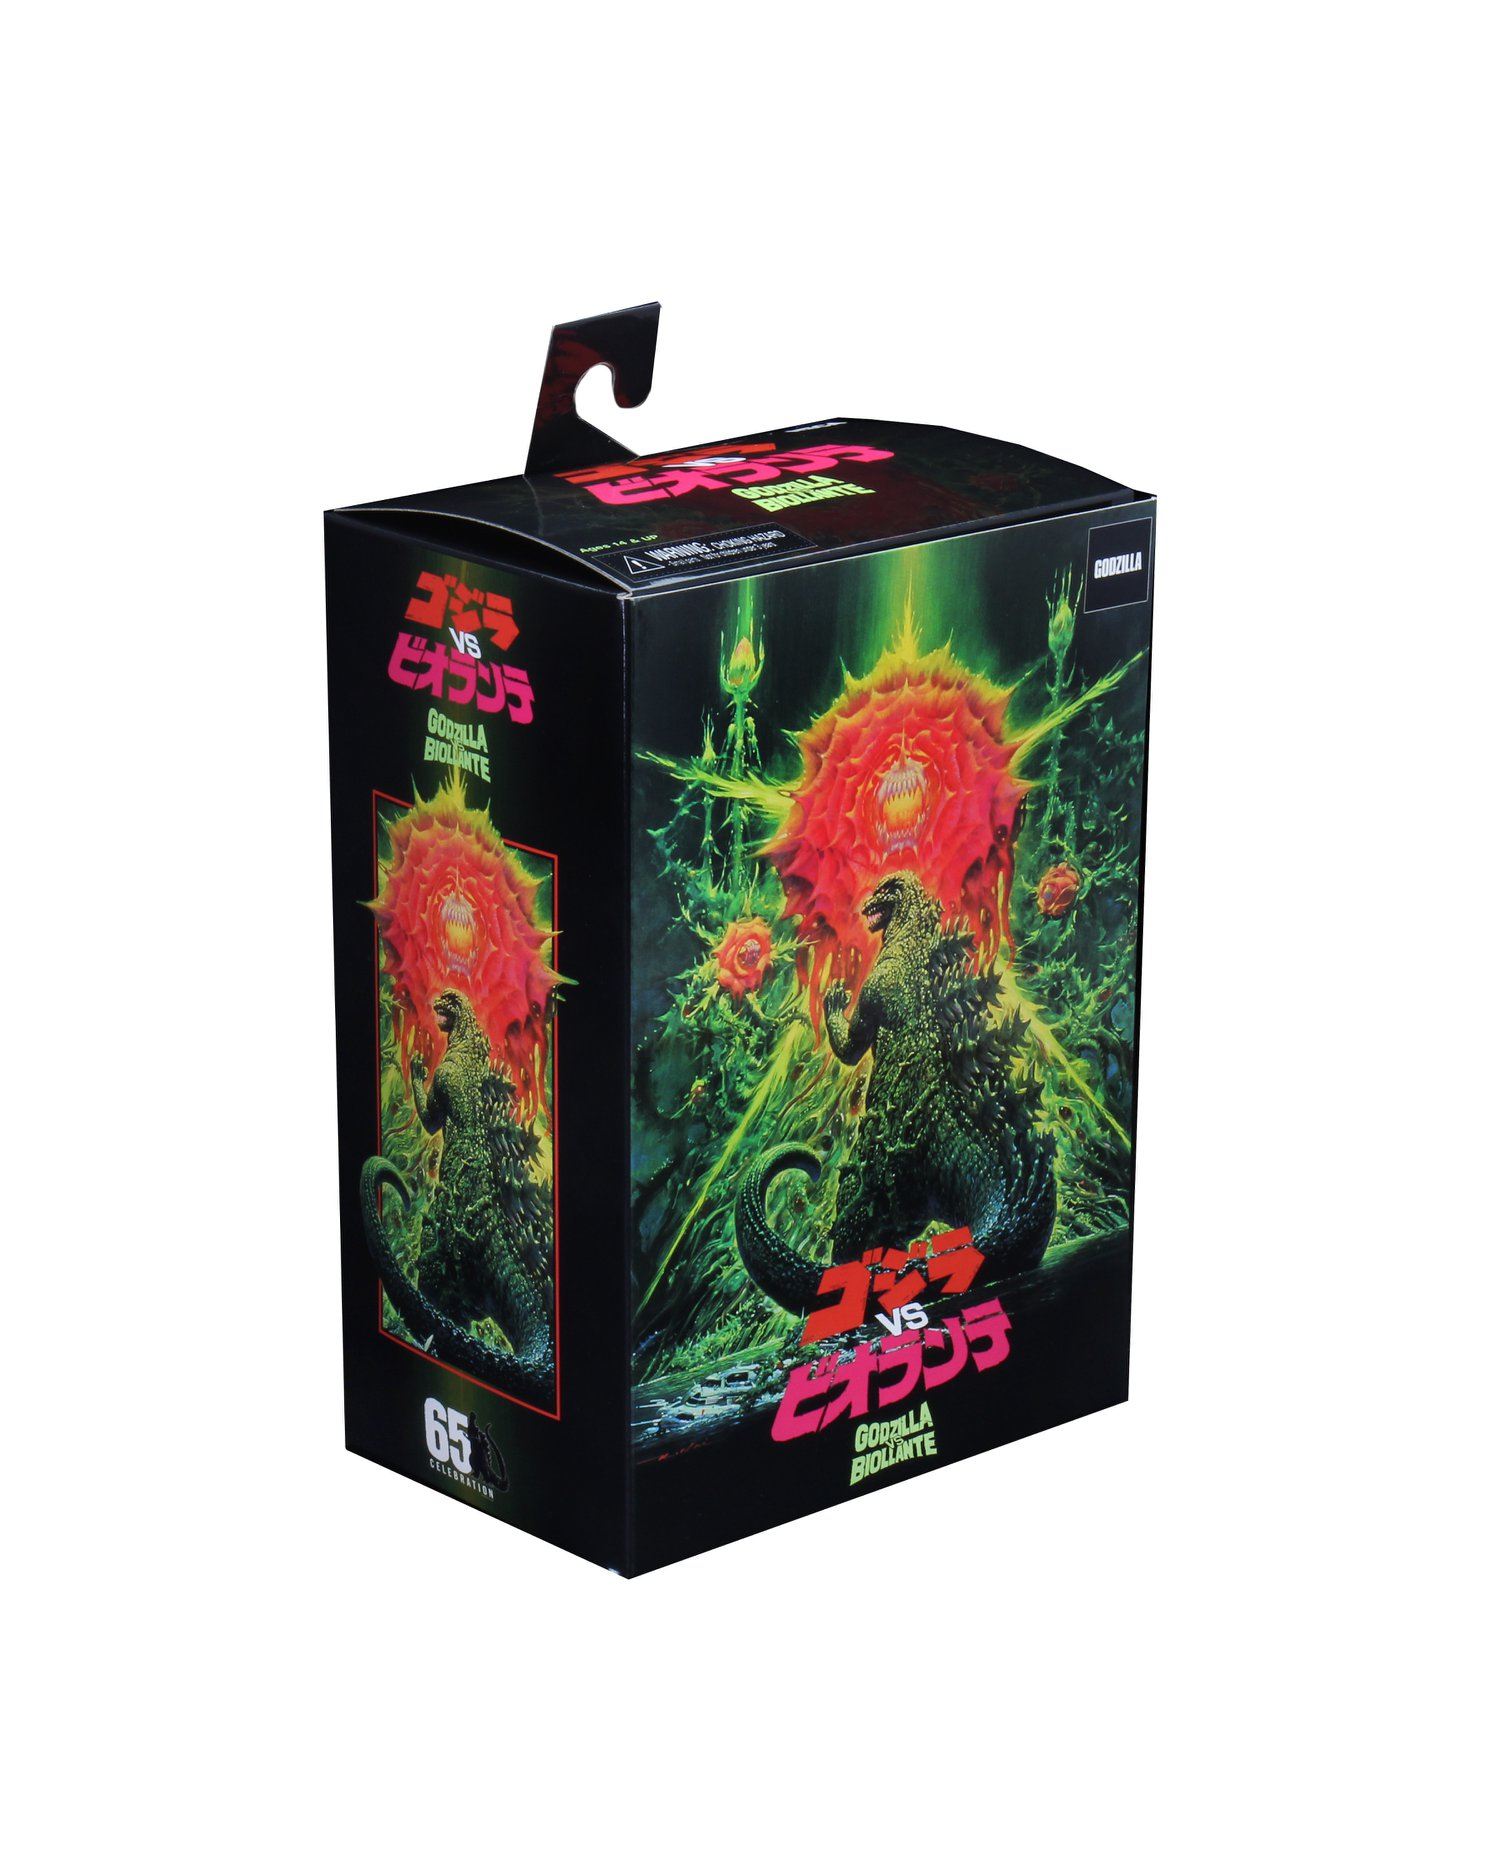 NECA Godzilla 1989 Packaging 002